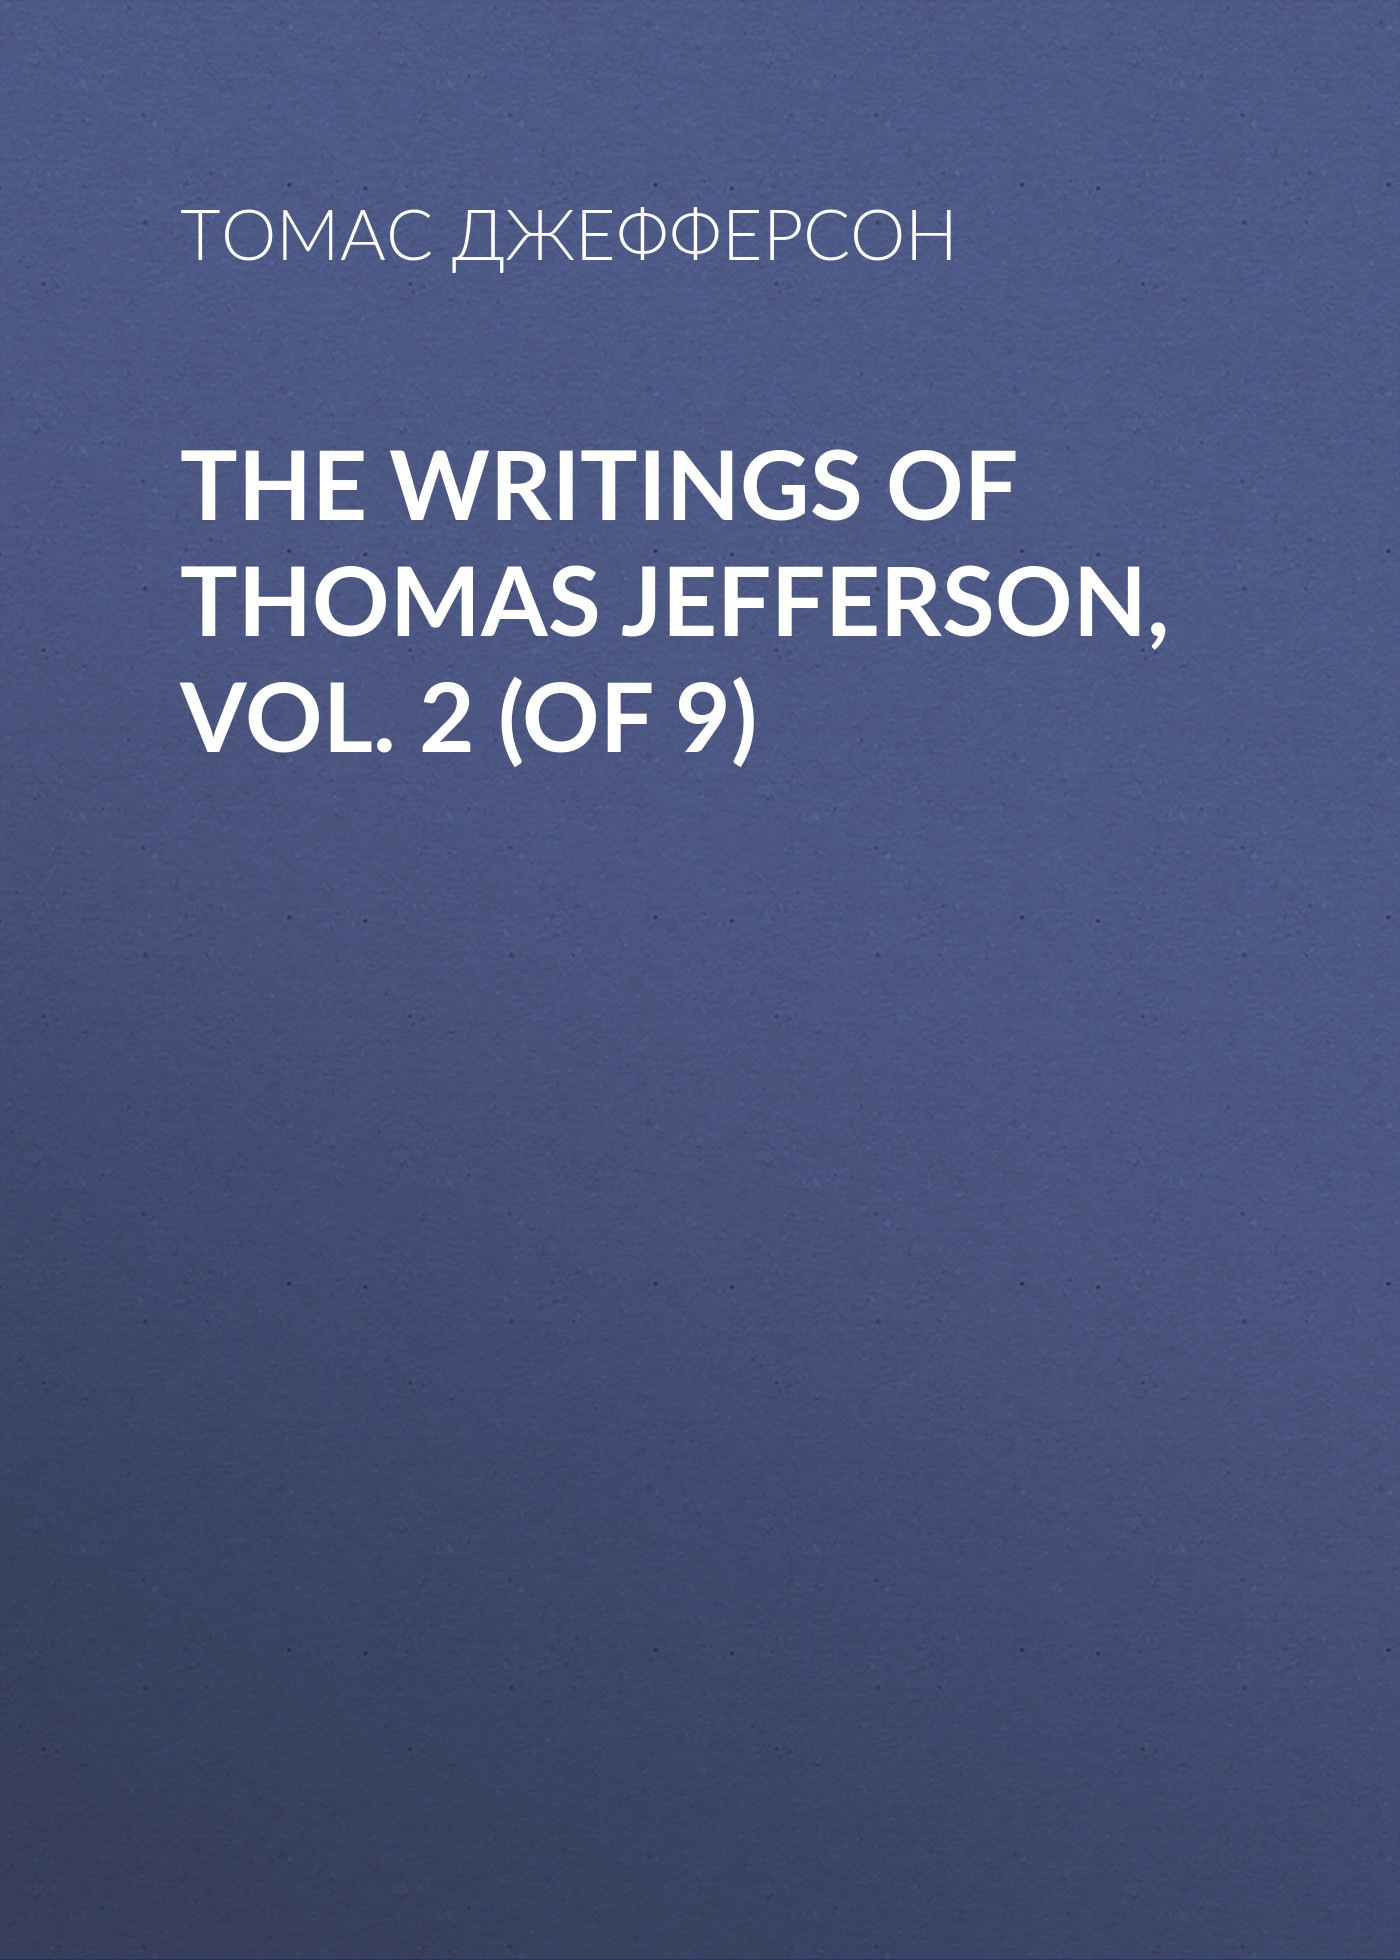 Томас Джефферсон The Writings of Thomas Jefferson, Vol. 2 (of 9) jack of fables vol 9 the end